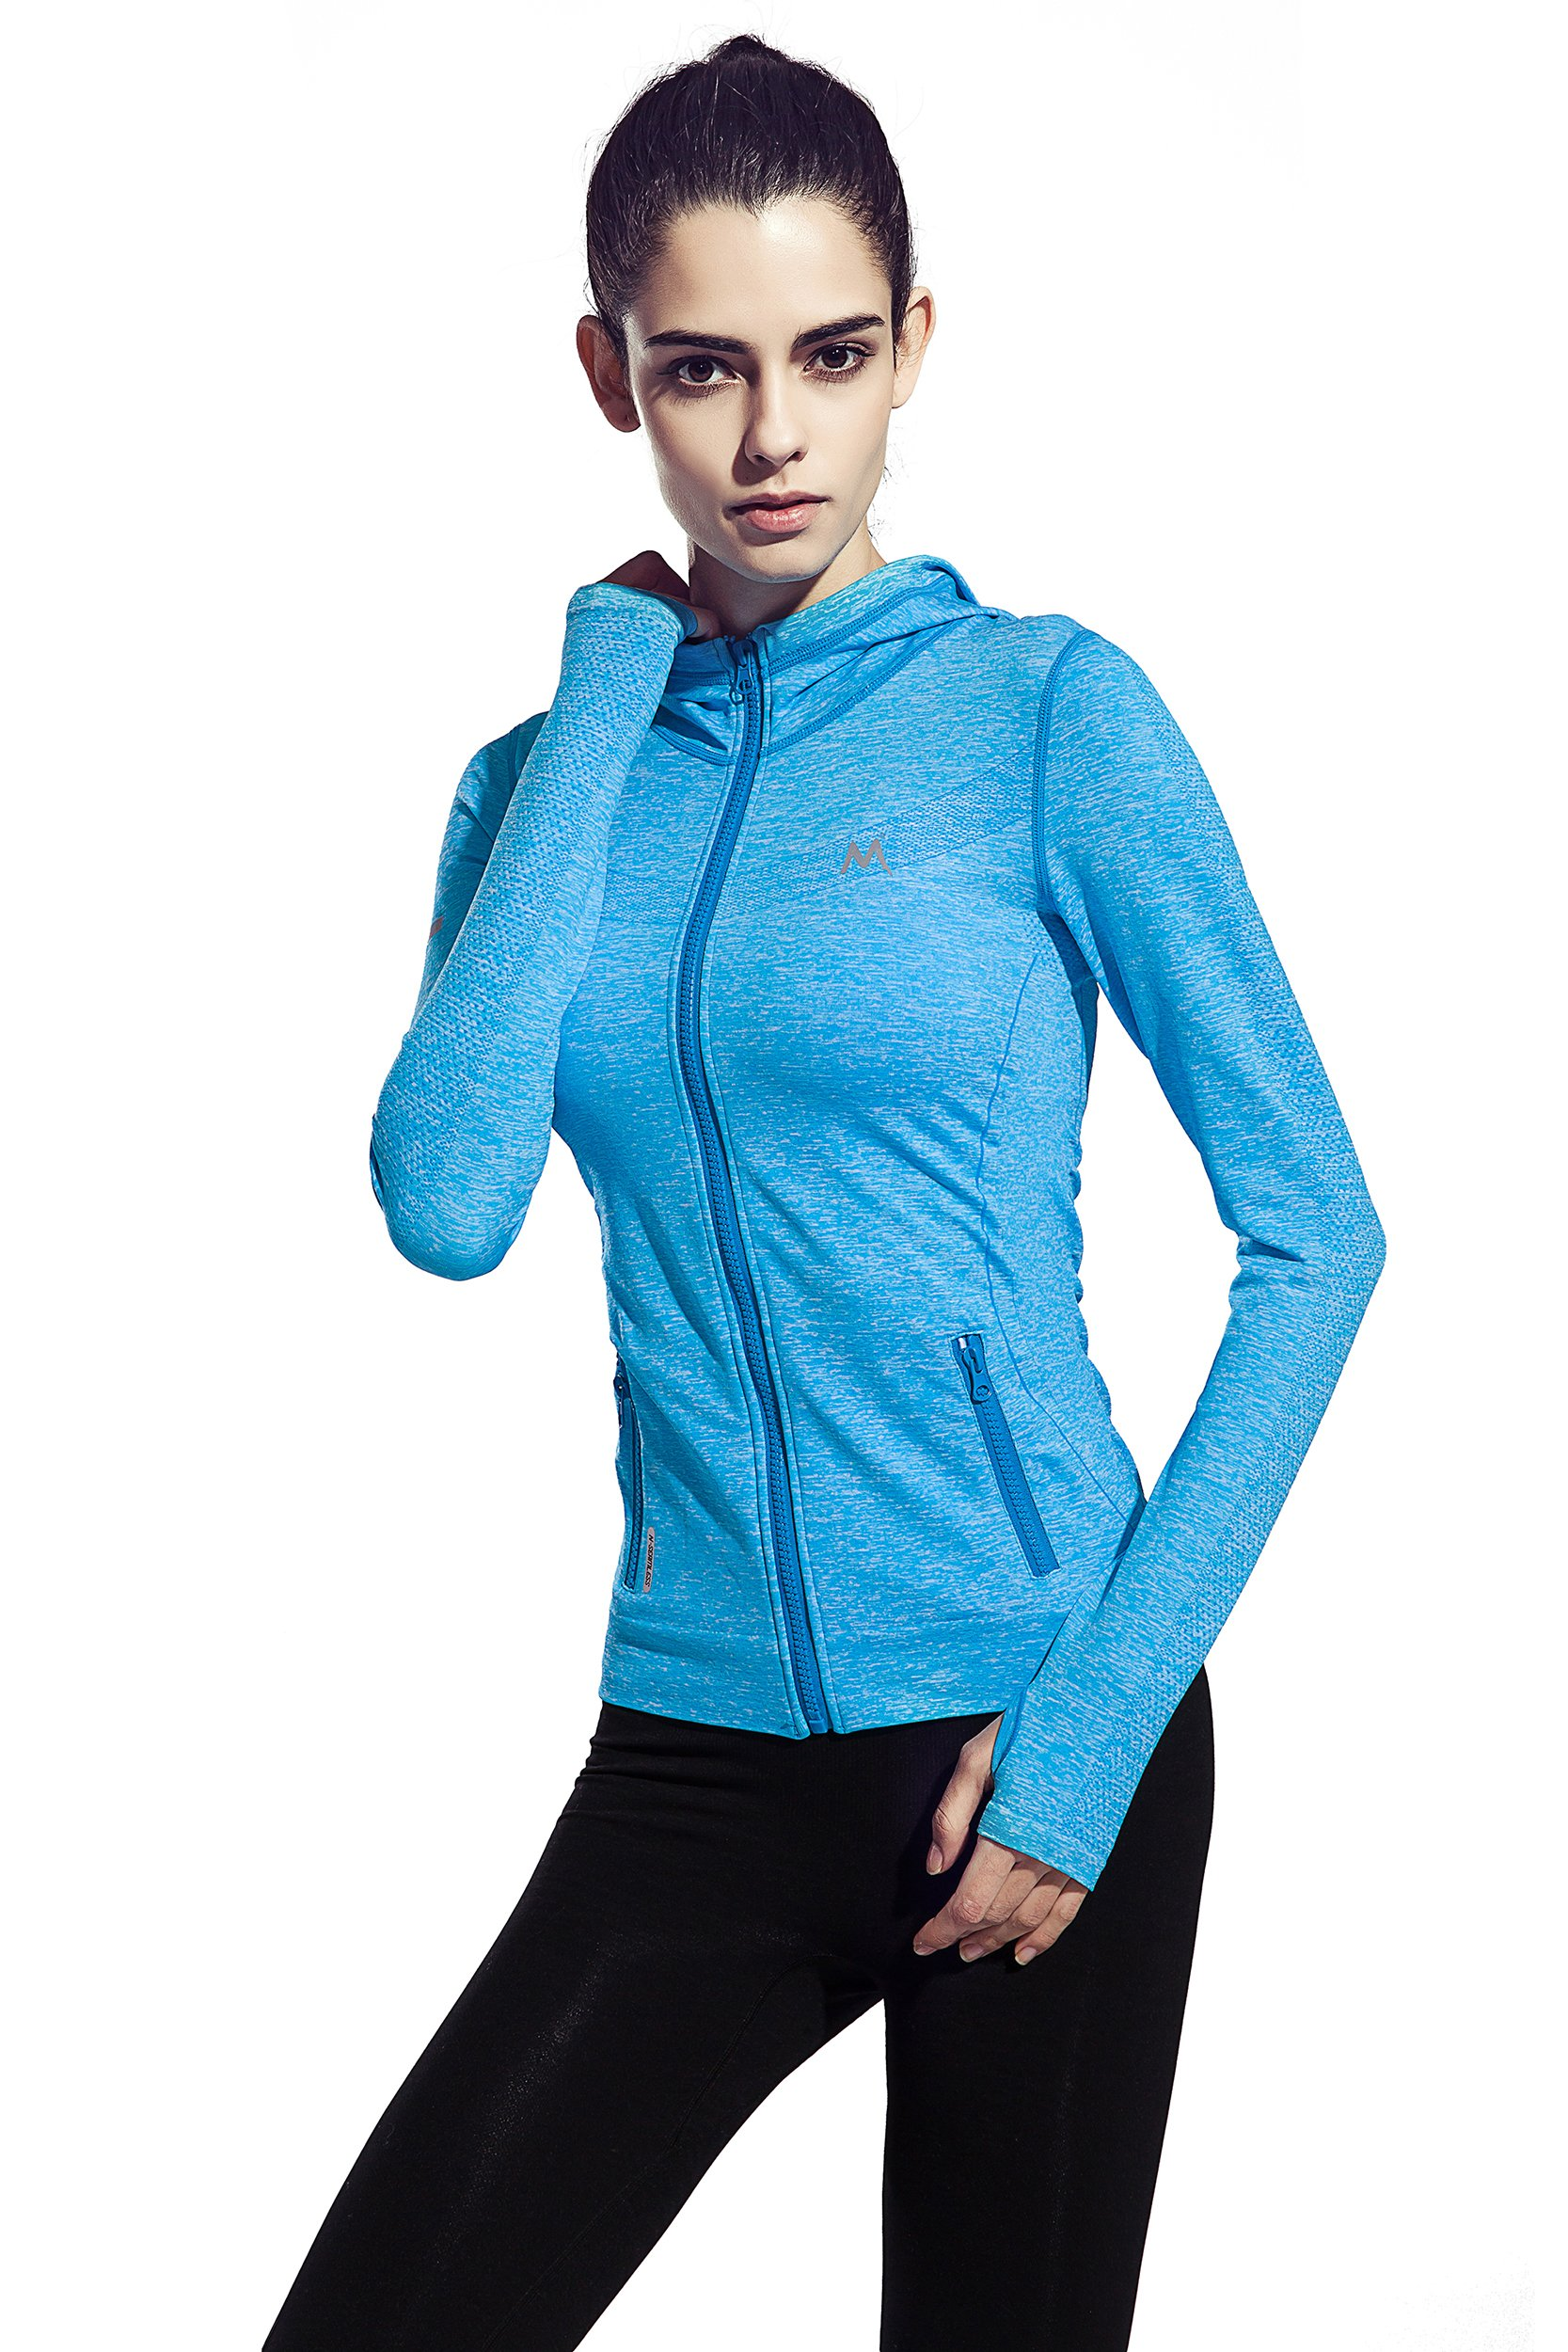 HonourSport Women's Stretchy Workout Dri-Fit Hooded Jacket Blue, S